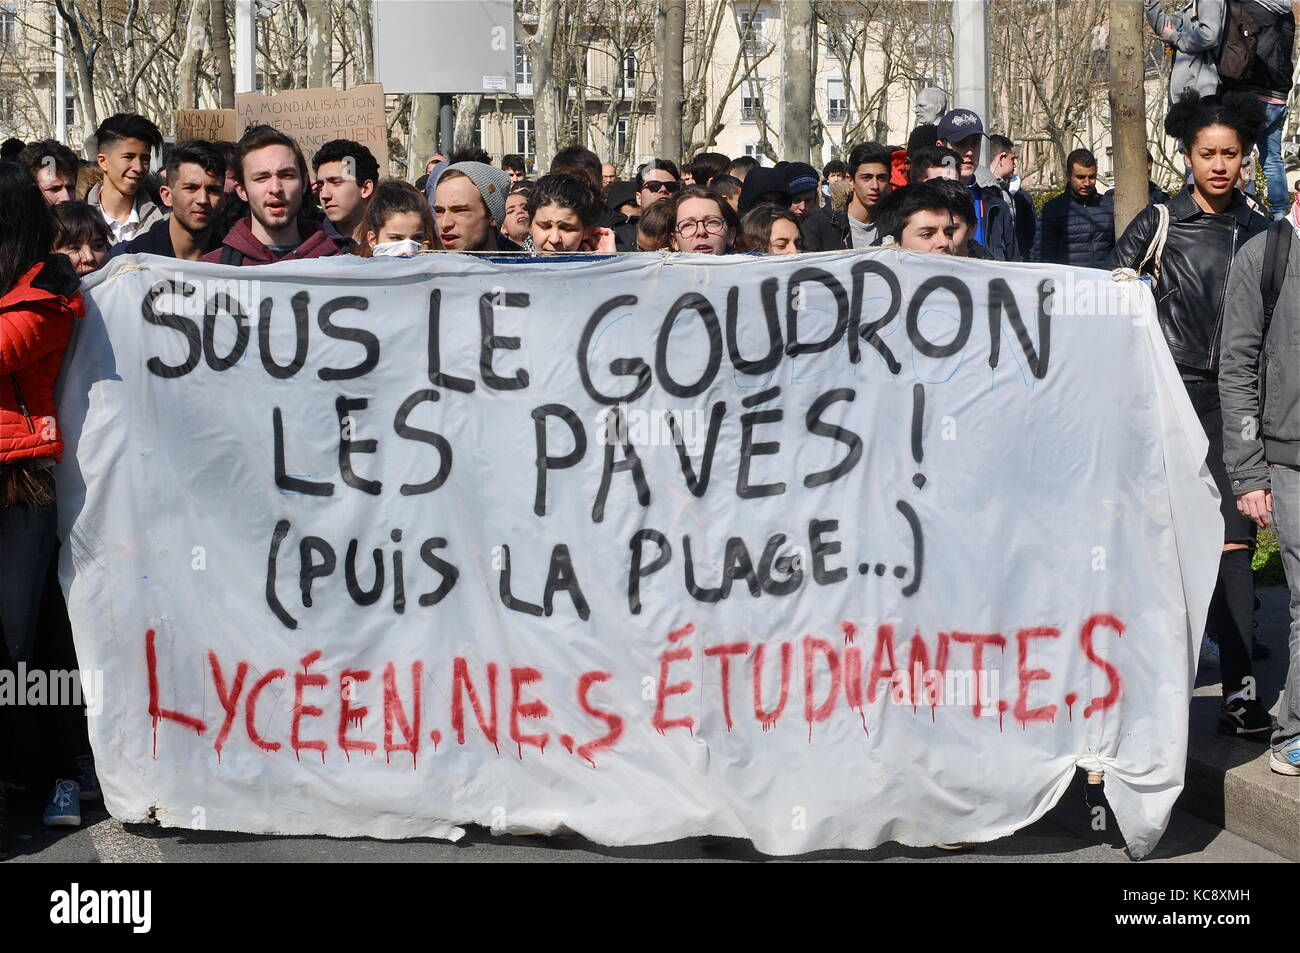 Students march in Lyon to protest against proposed Labour law Lyon, France Stock Photo